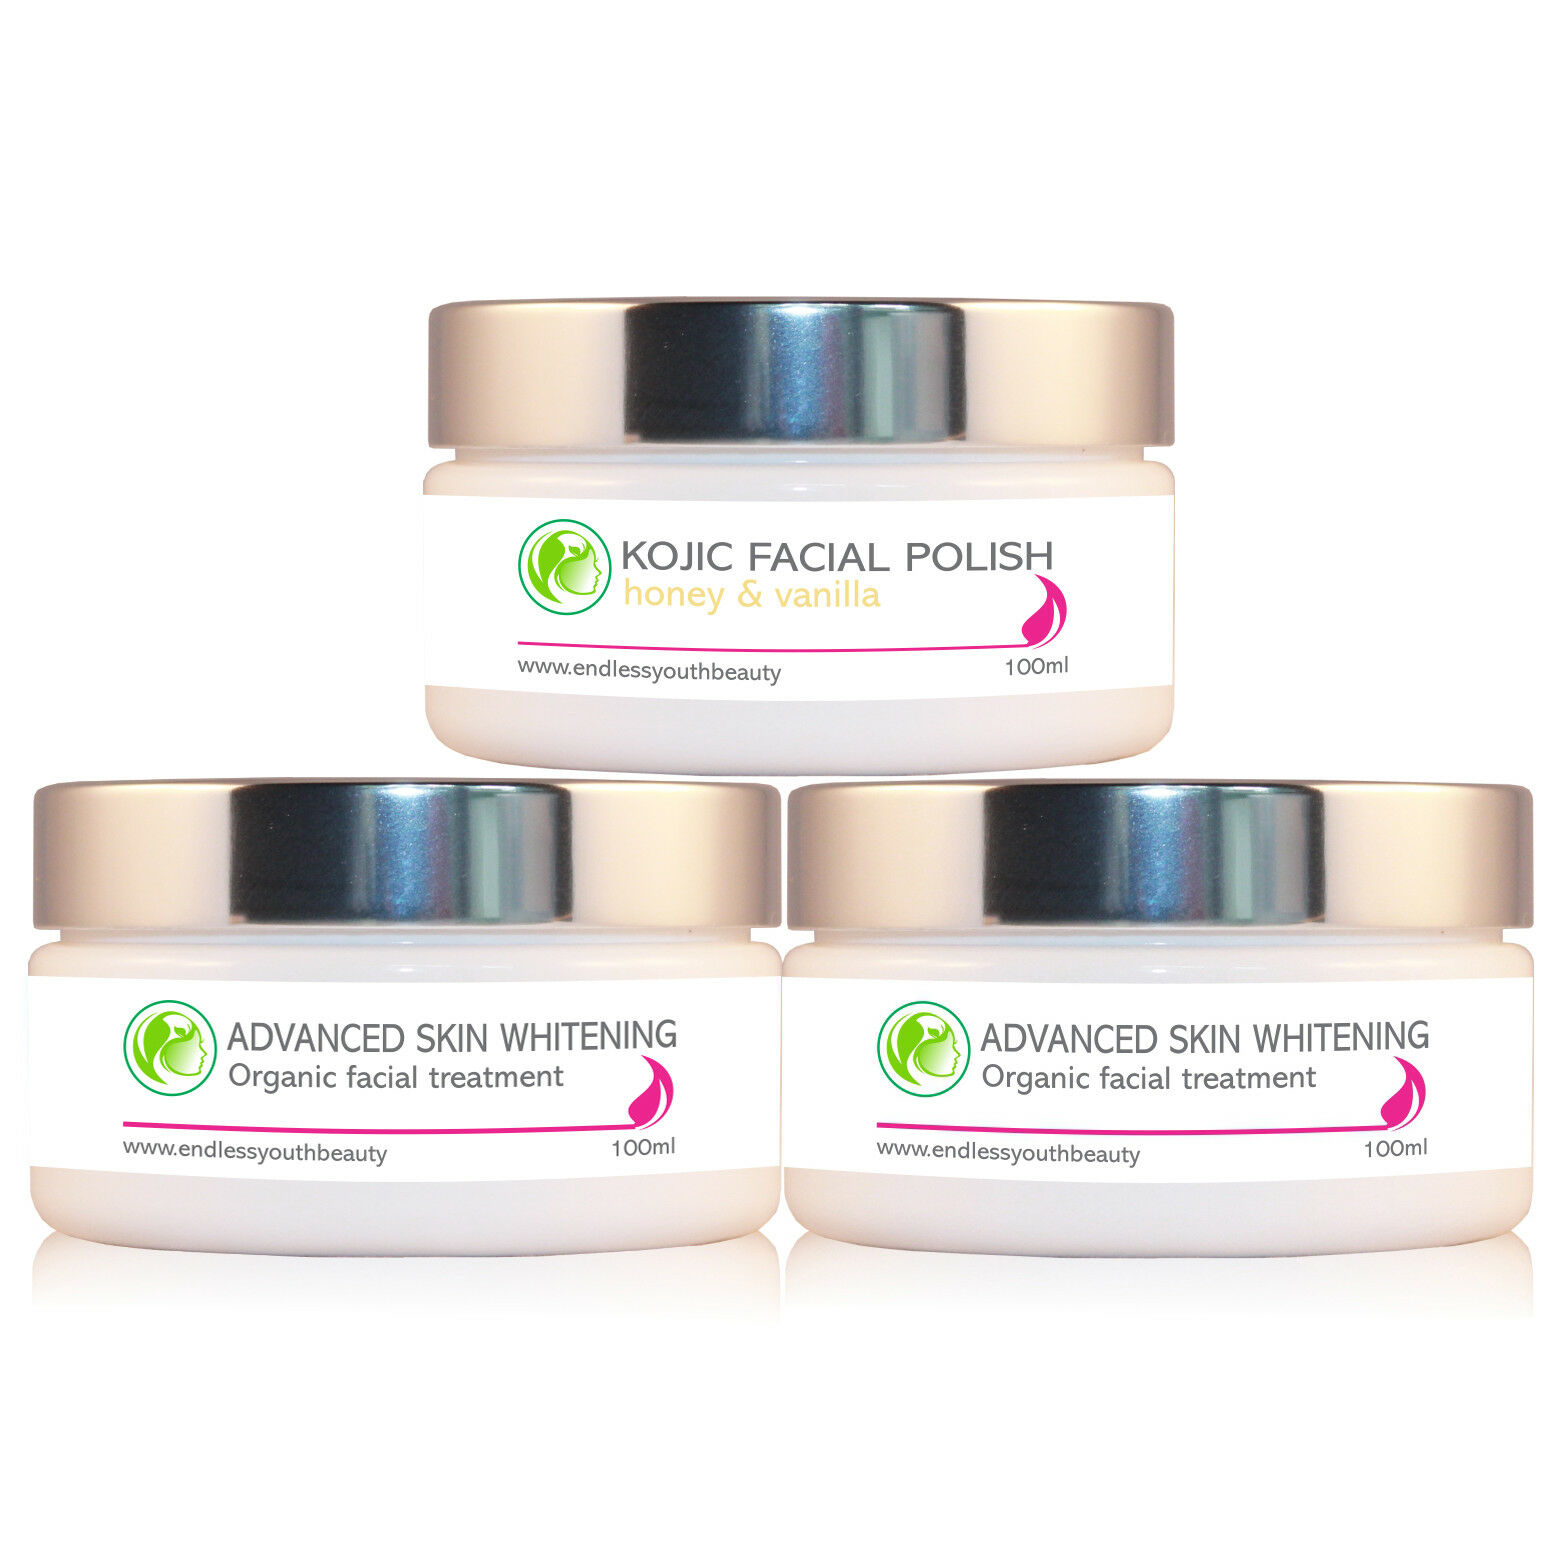 2 X Skin Whitening Lightening Bleaching Cream Facial Scrub 1 Of 4only 5 Available See More